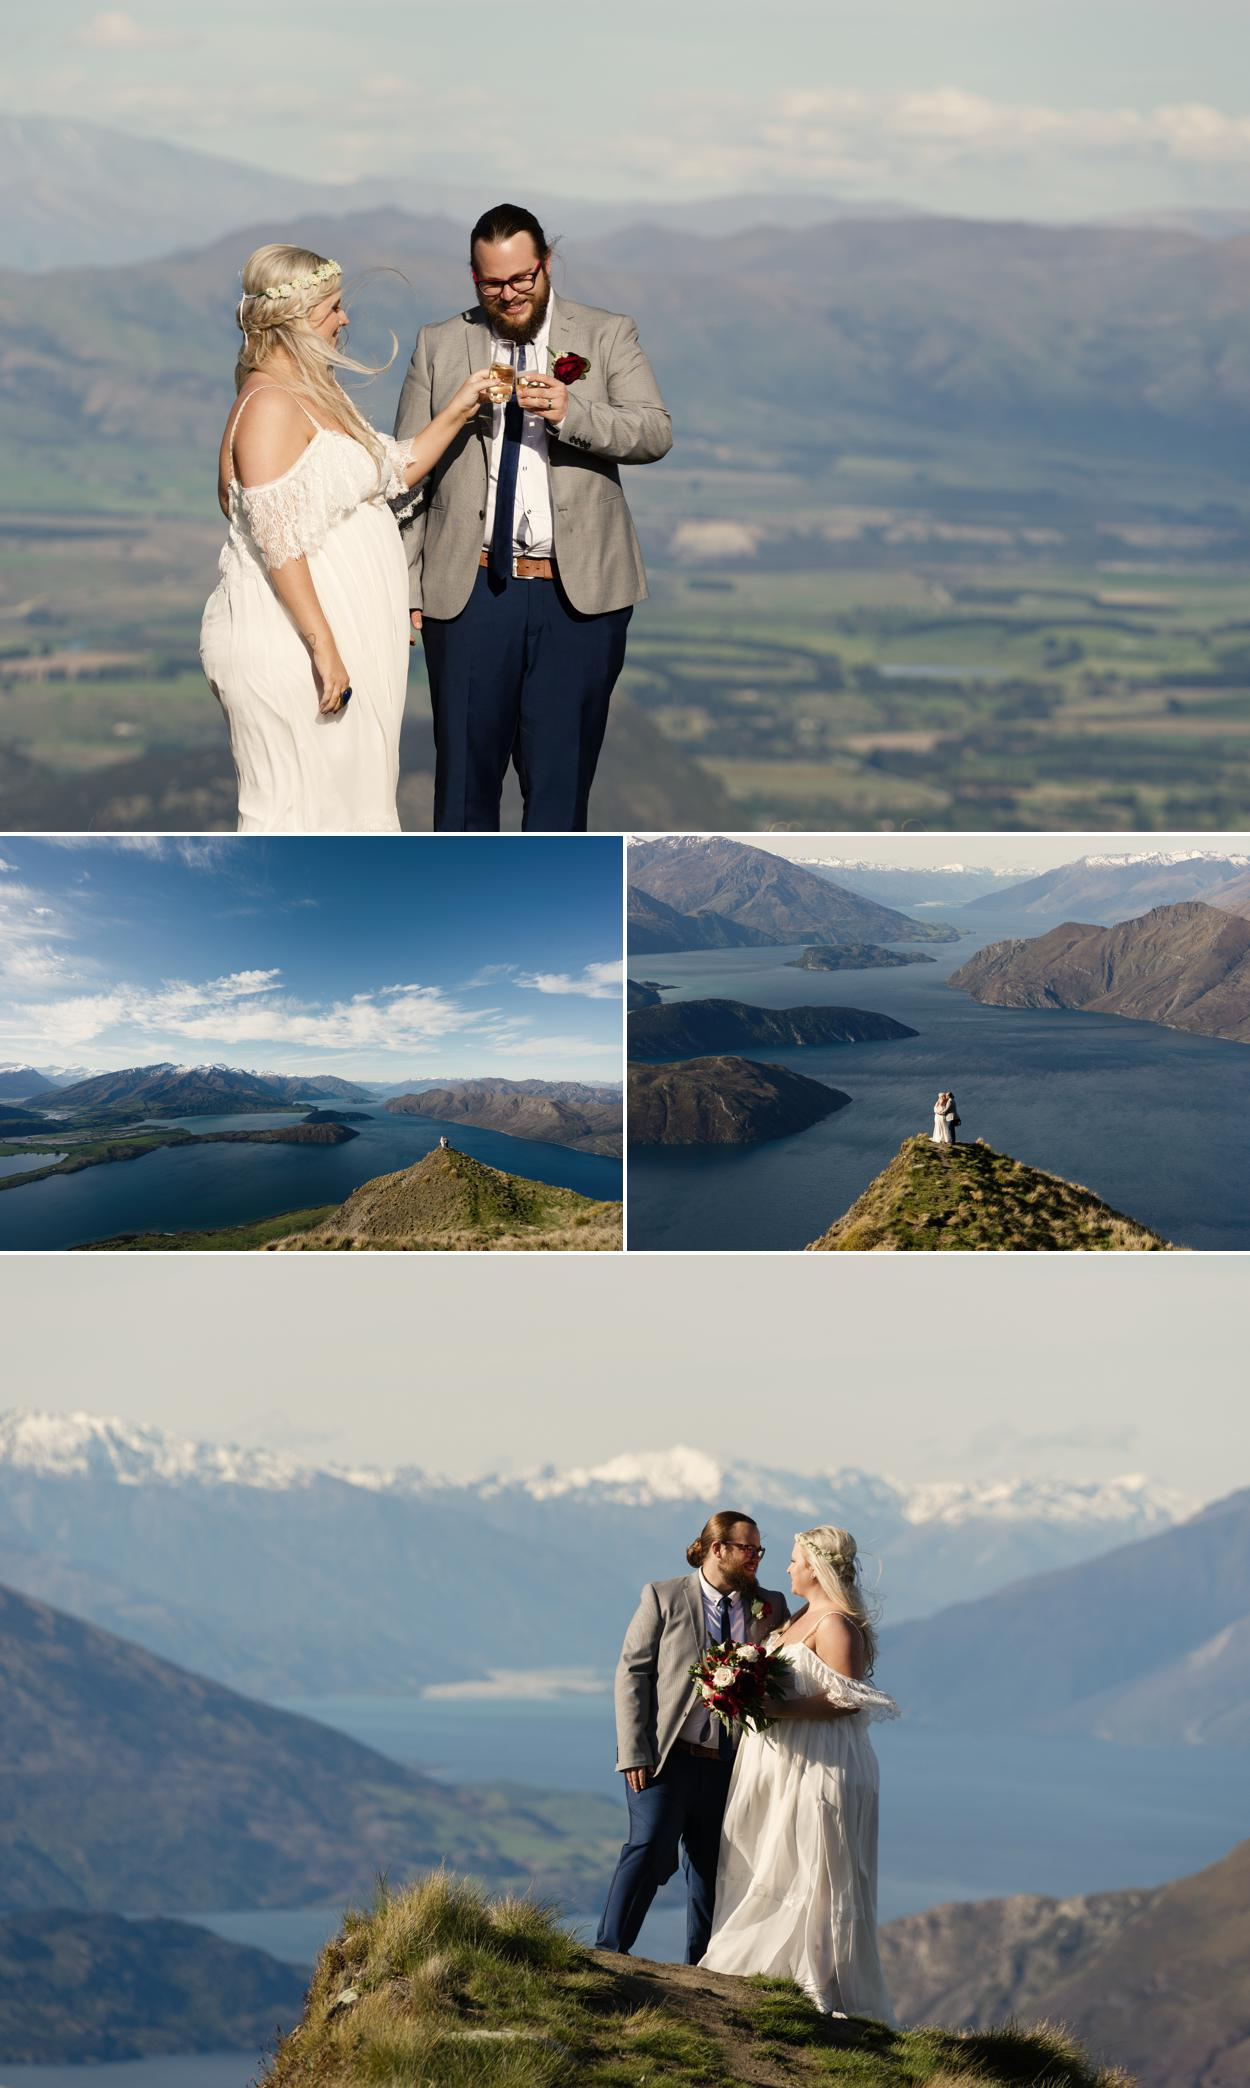 Coromandel Peak wedding photographer